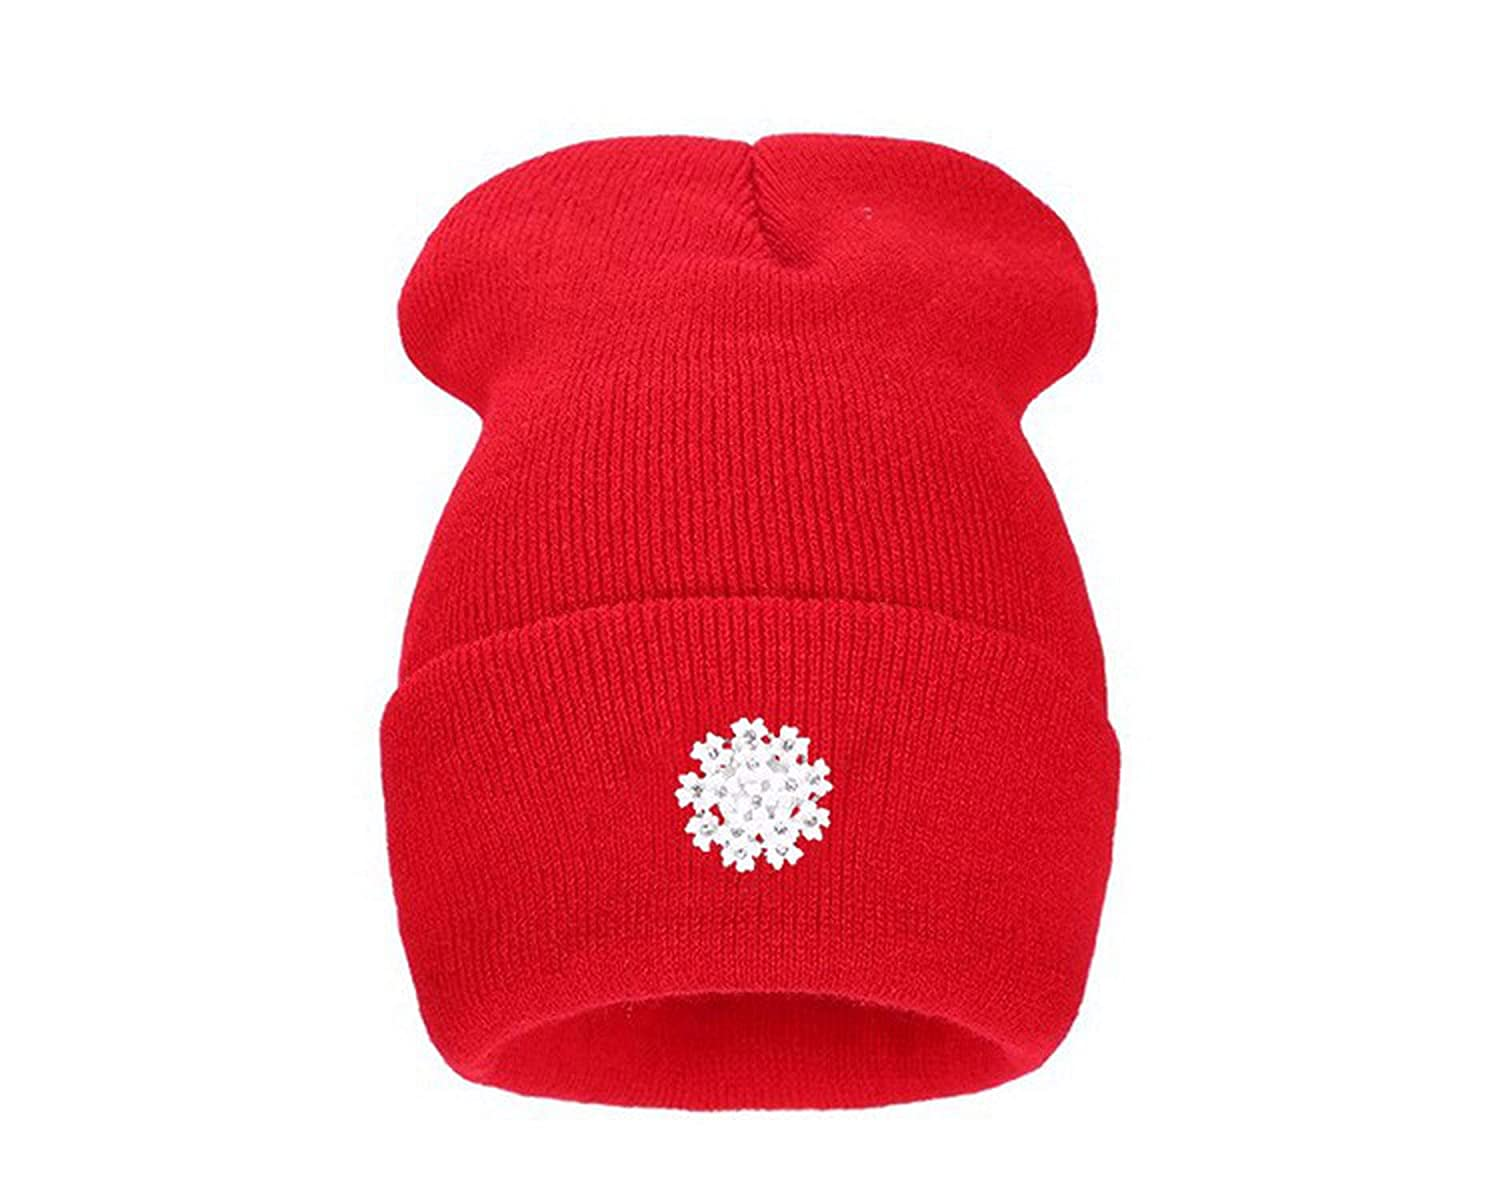 Lovely Knitting Wool Acrylic Beanies Hip Hop One Flower Hats for Women Gorros Bonnets Woman Floral